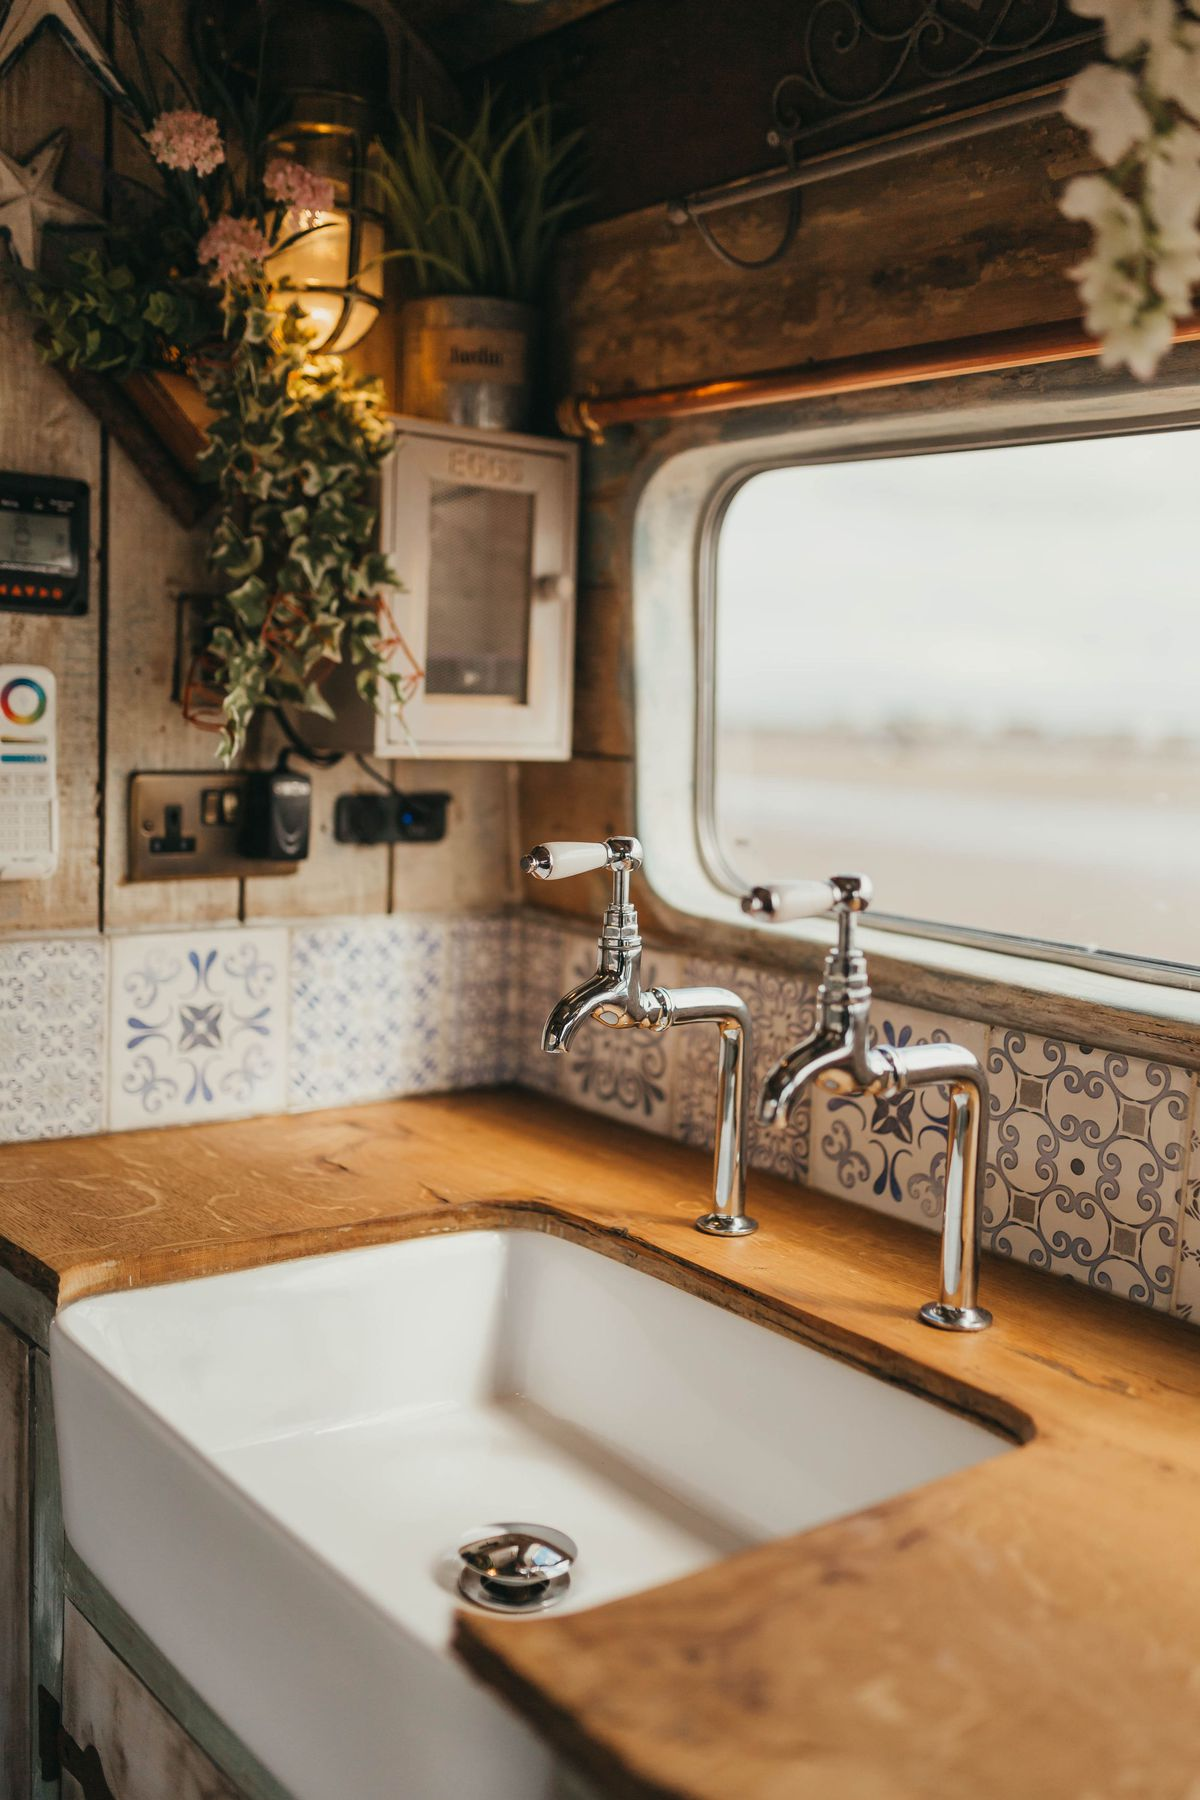 A close-up of the camper's white farmhouse sink, with wood countertops and silver faucets. There's also a blue-and-white backsplash and a large window above the sink.